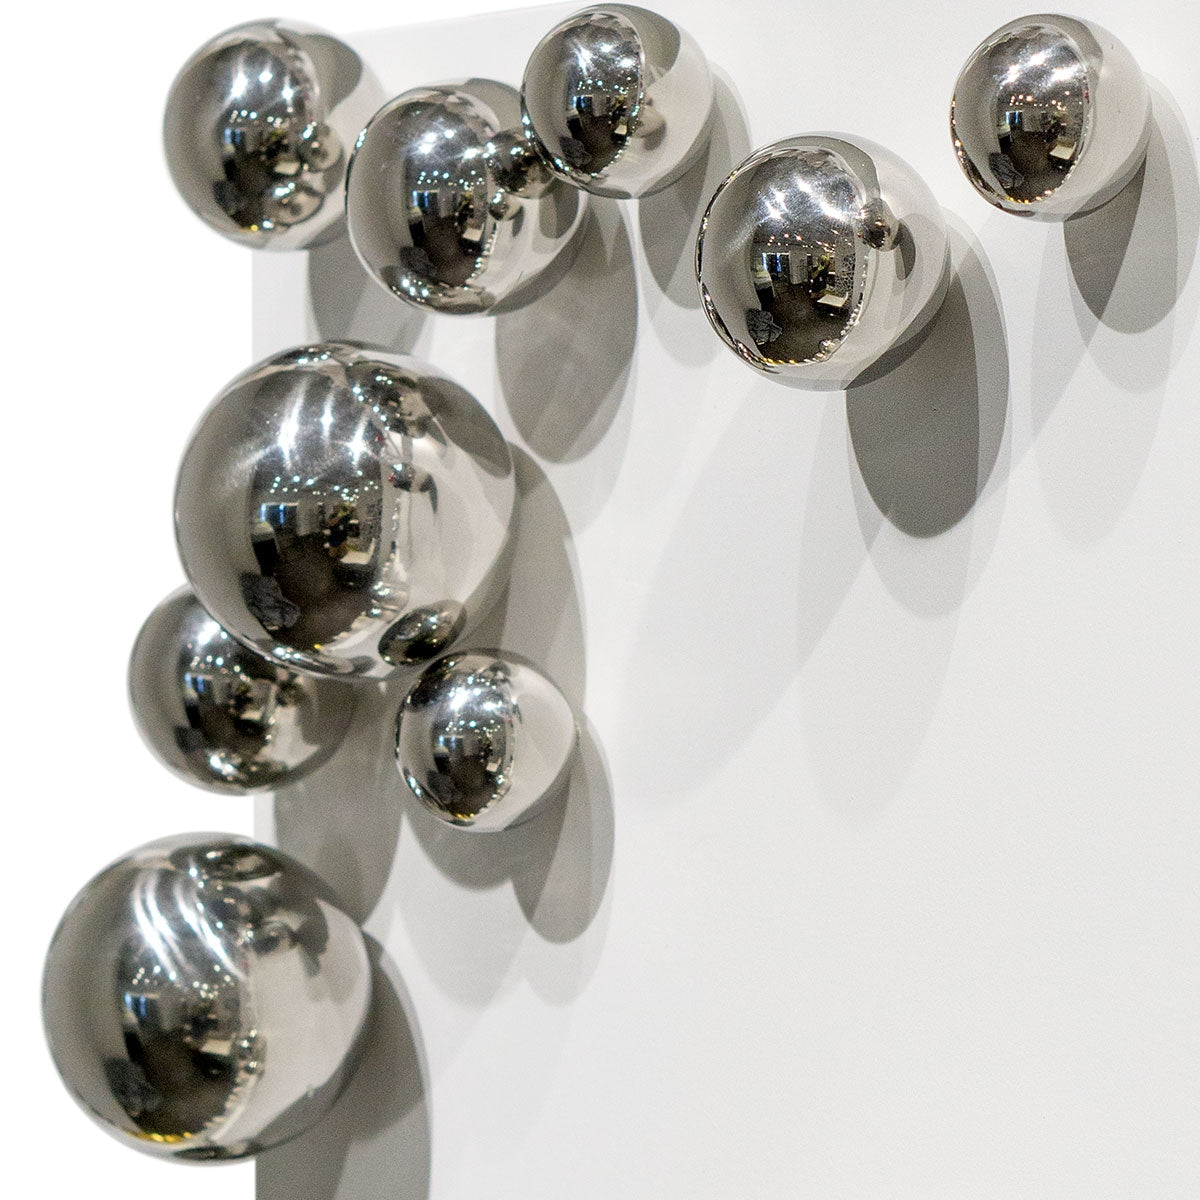 Wall Play™ Substrate White w/ Orb Stainless